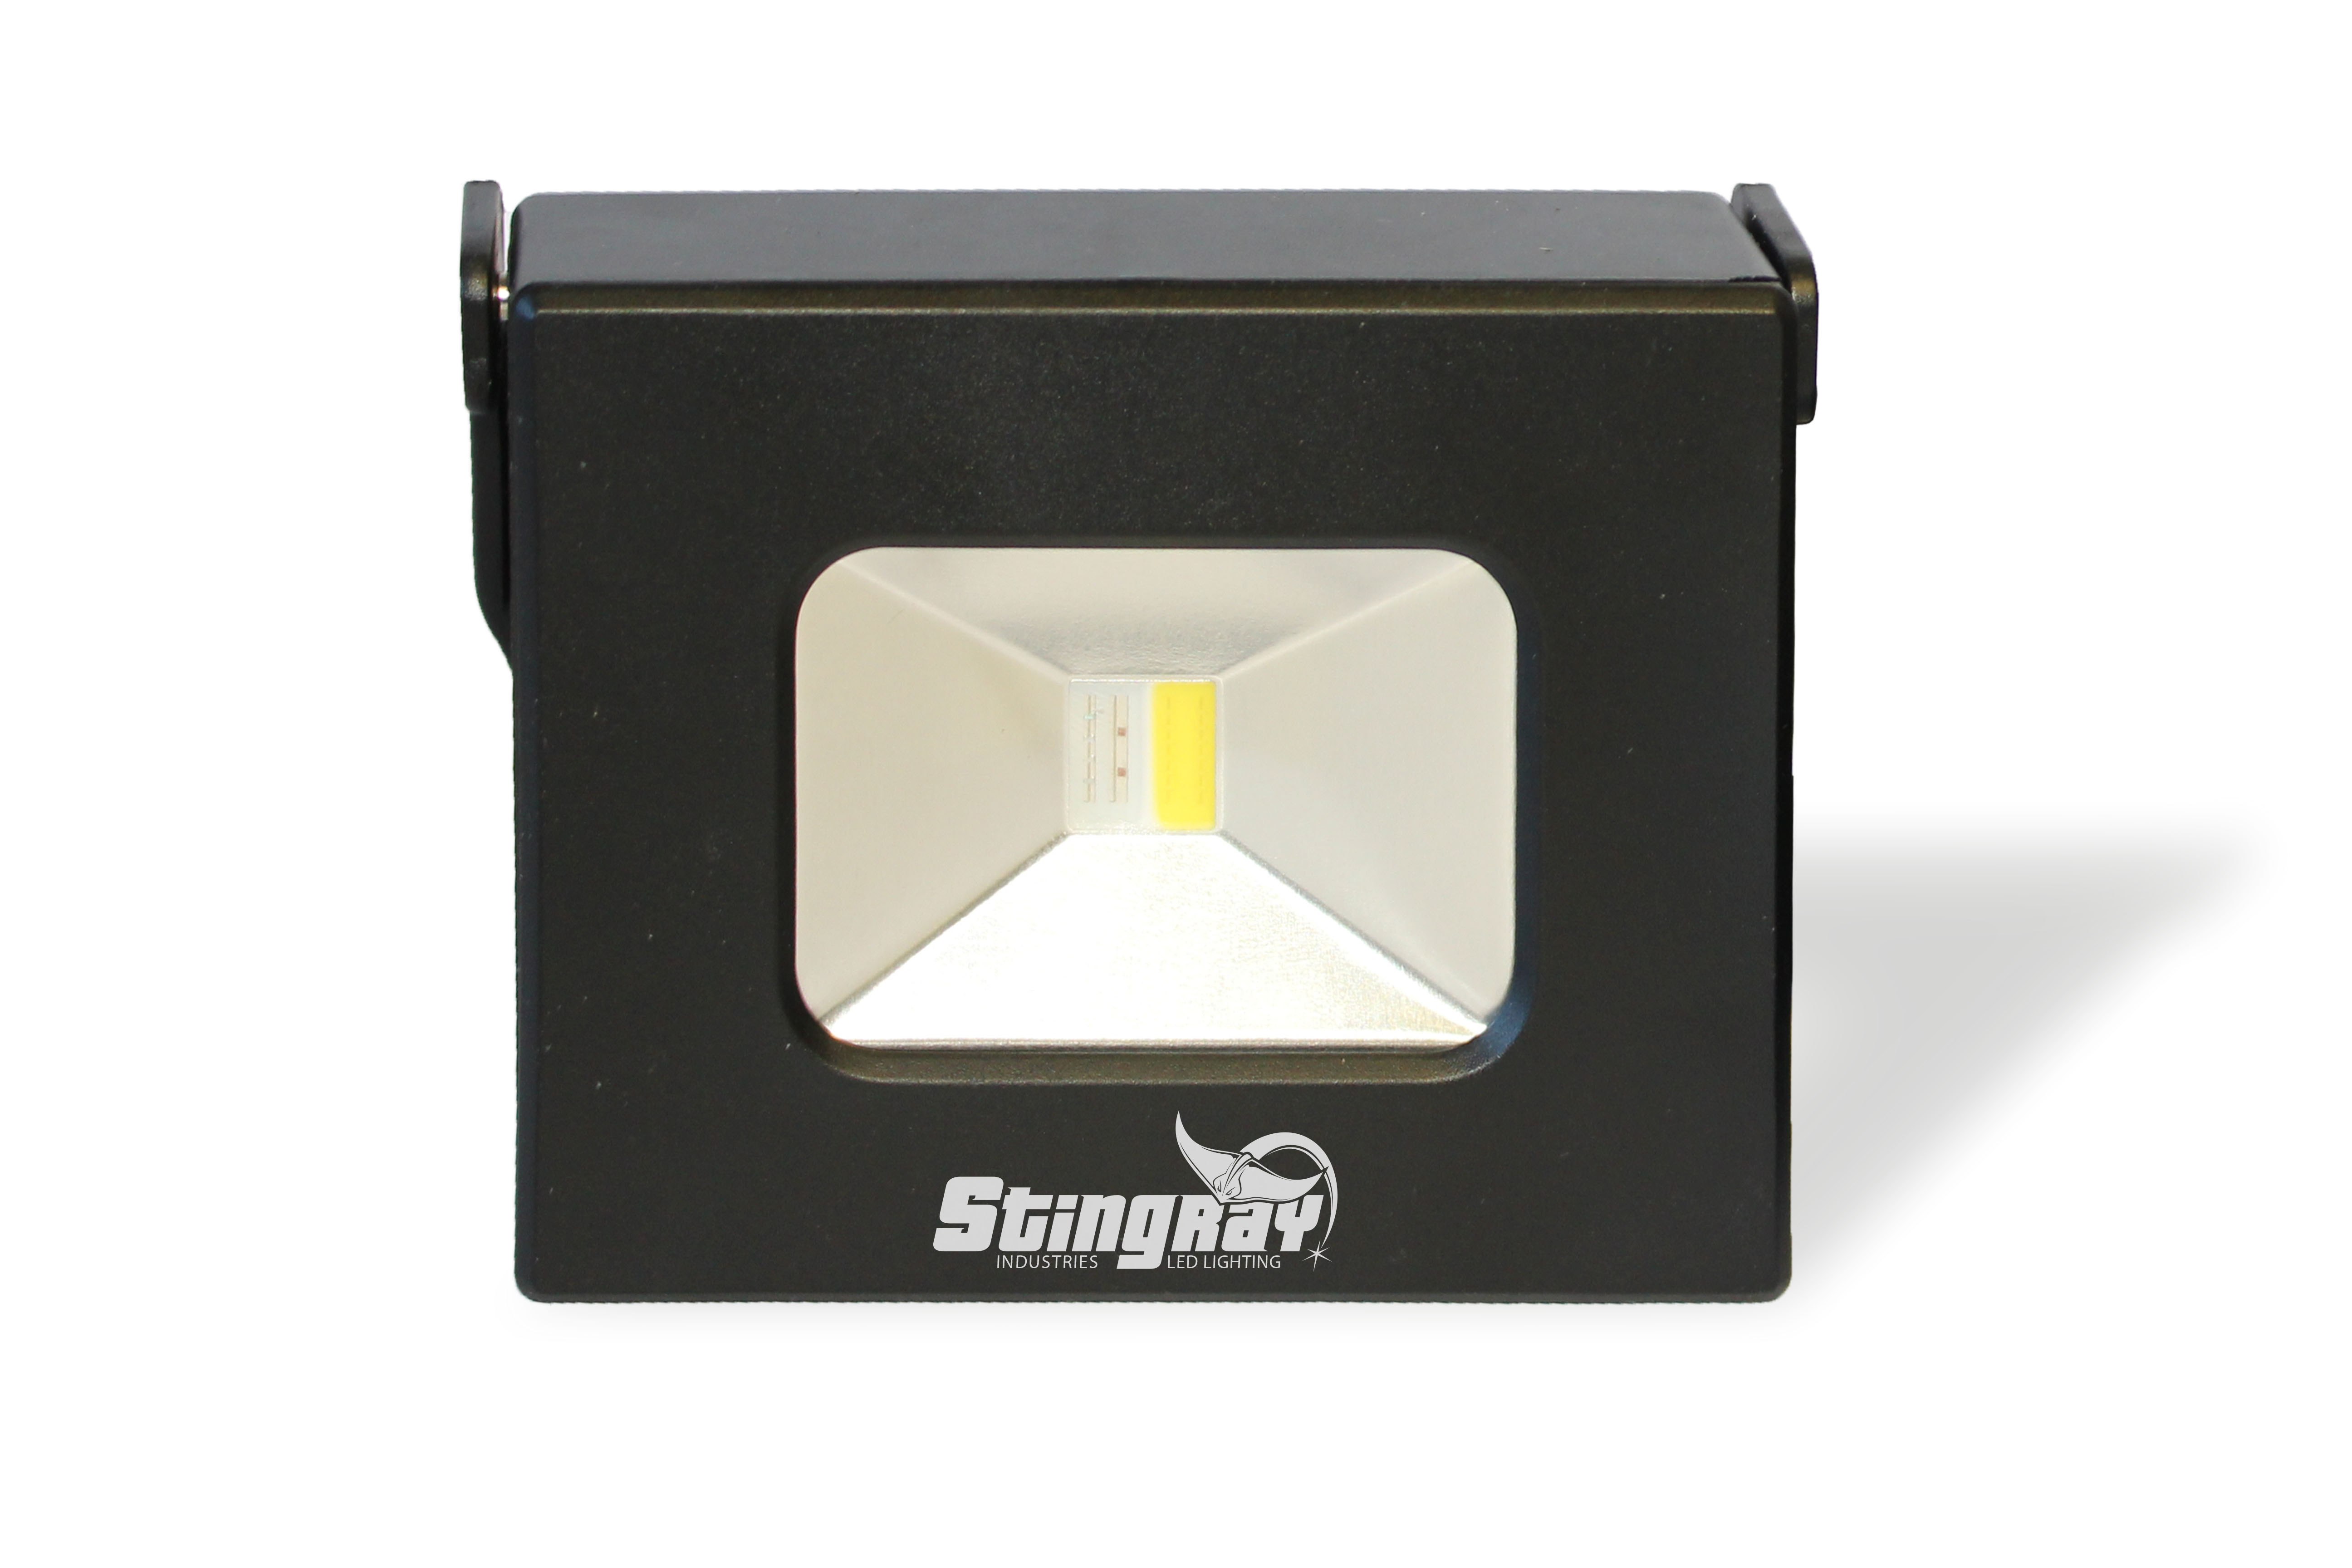 Pathfinder Stingray Industries LED LLC